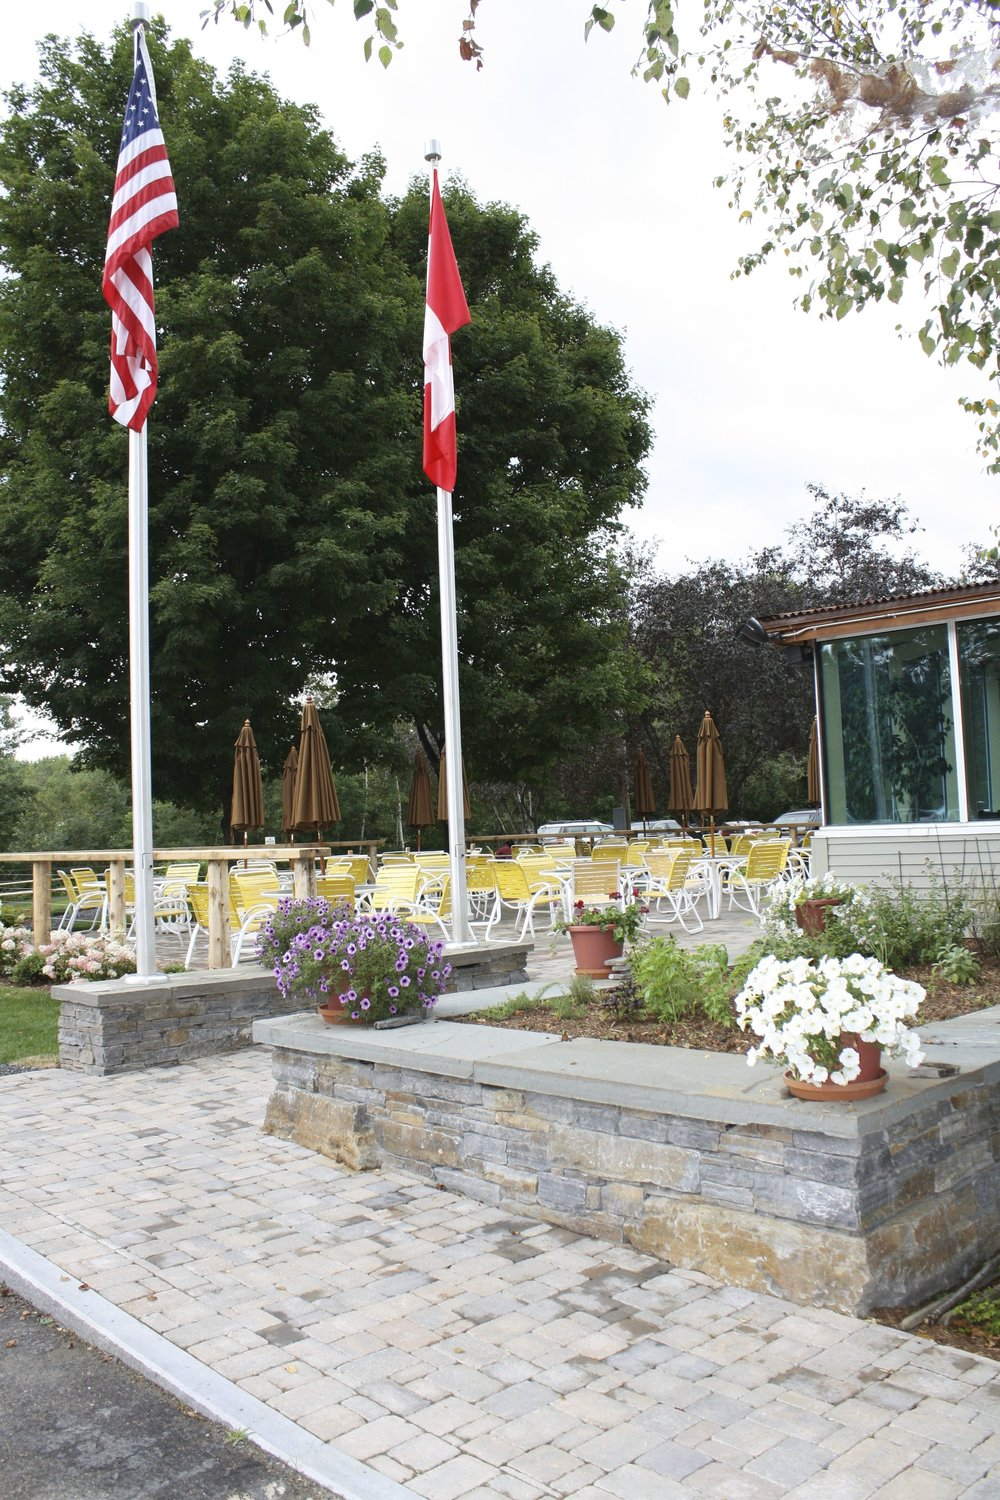 """Crop Bistro completes new dining deck"" from the Stowe Reporter"